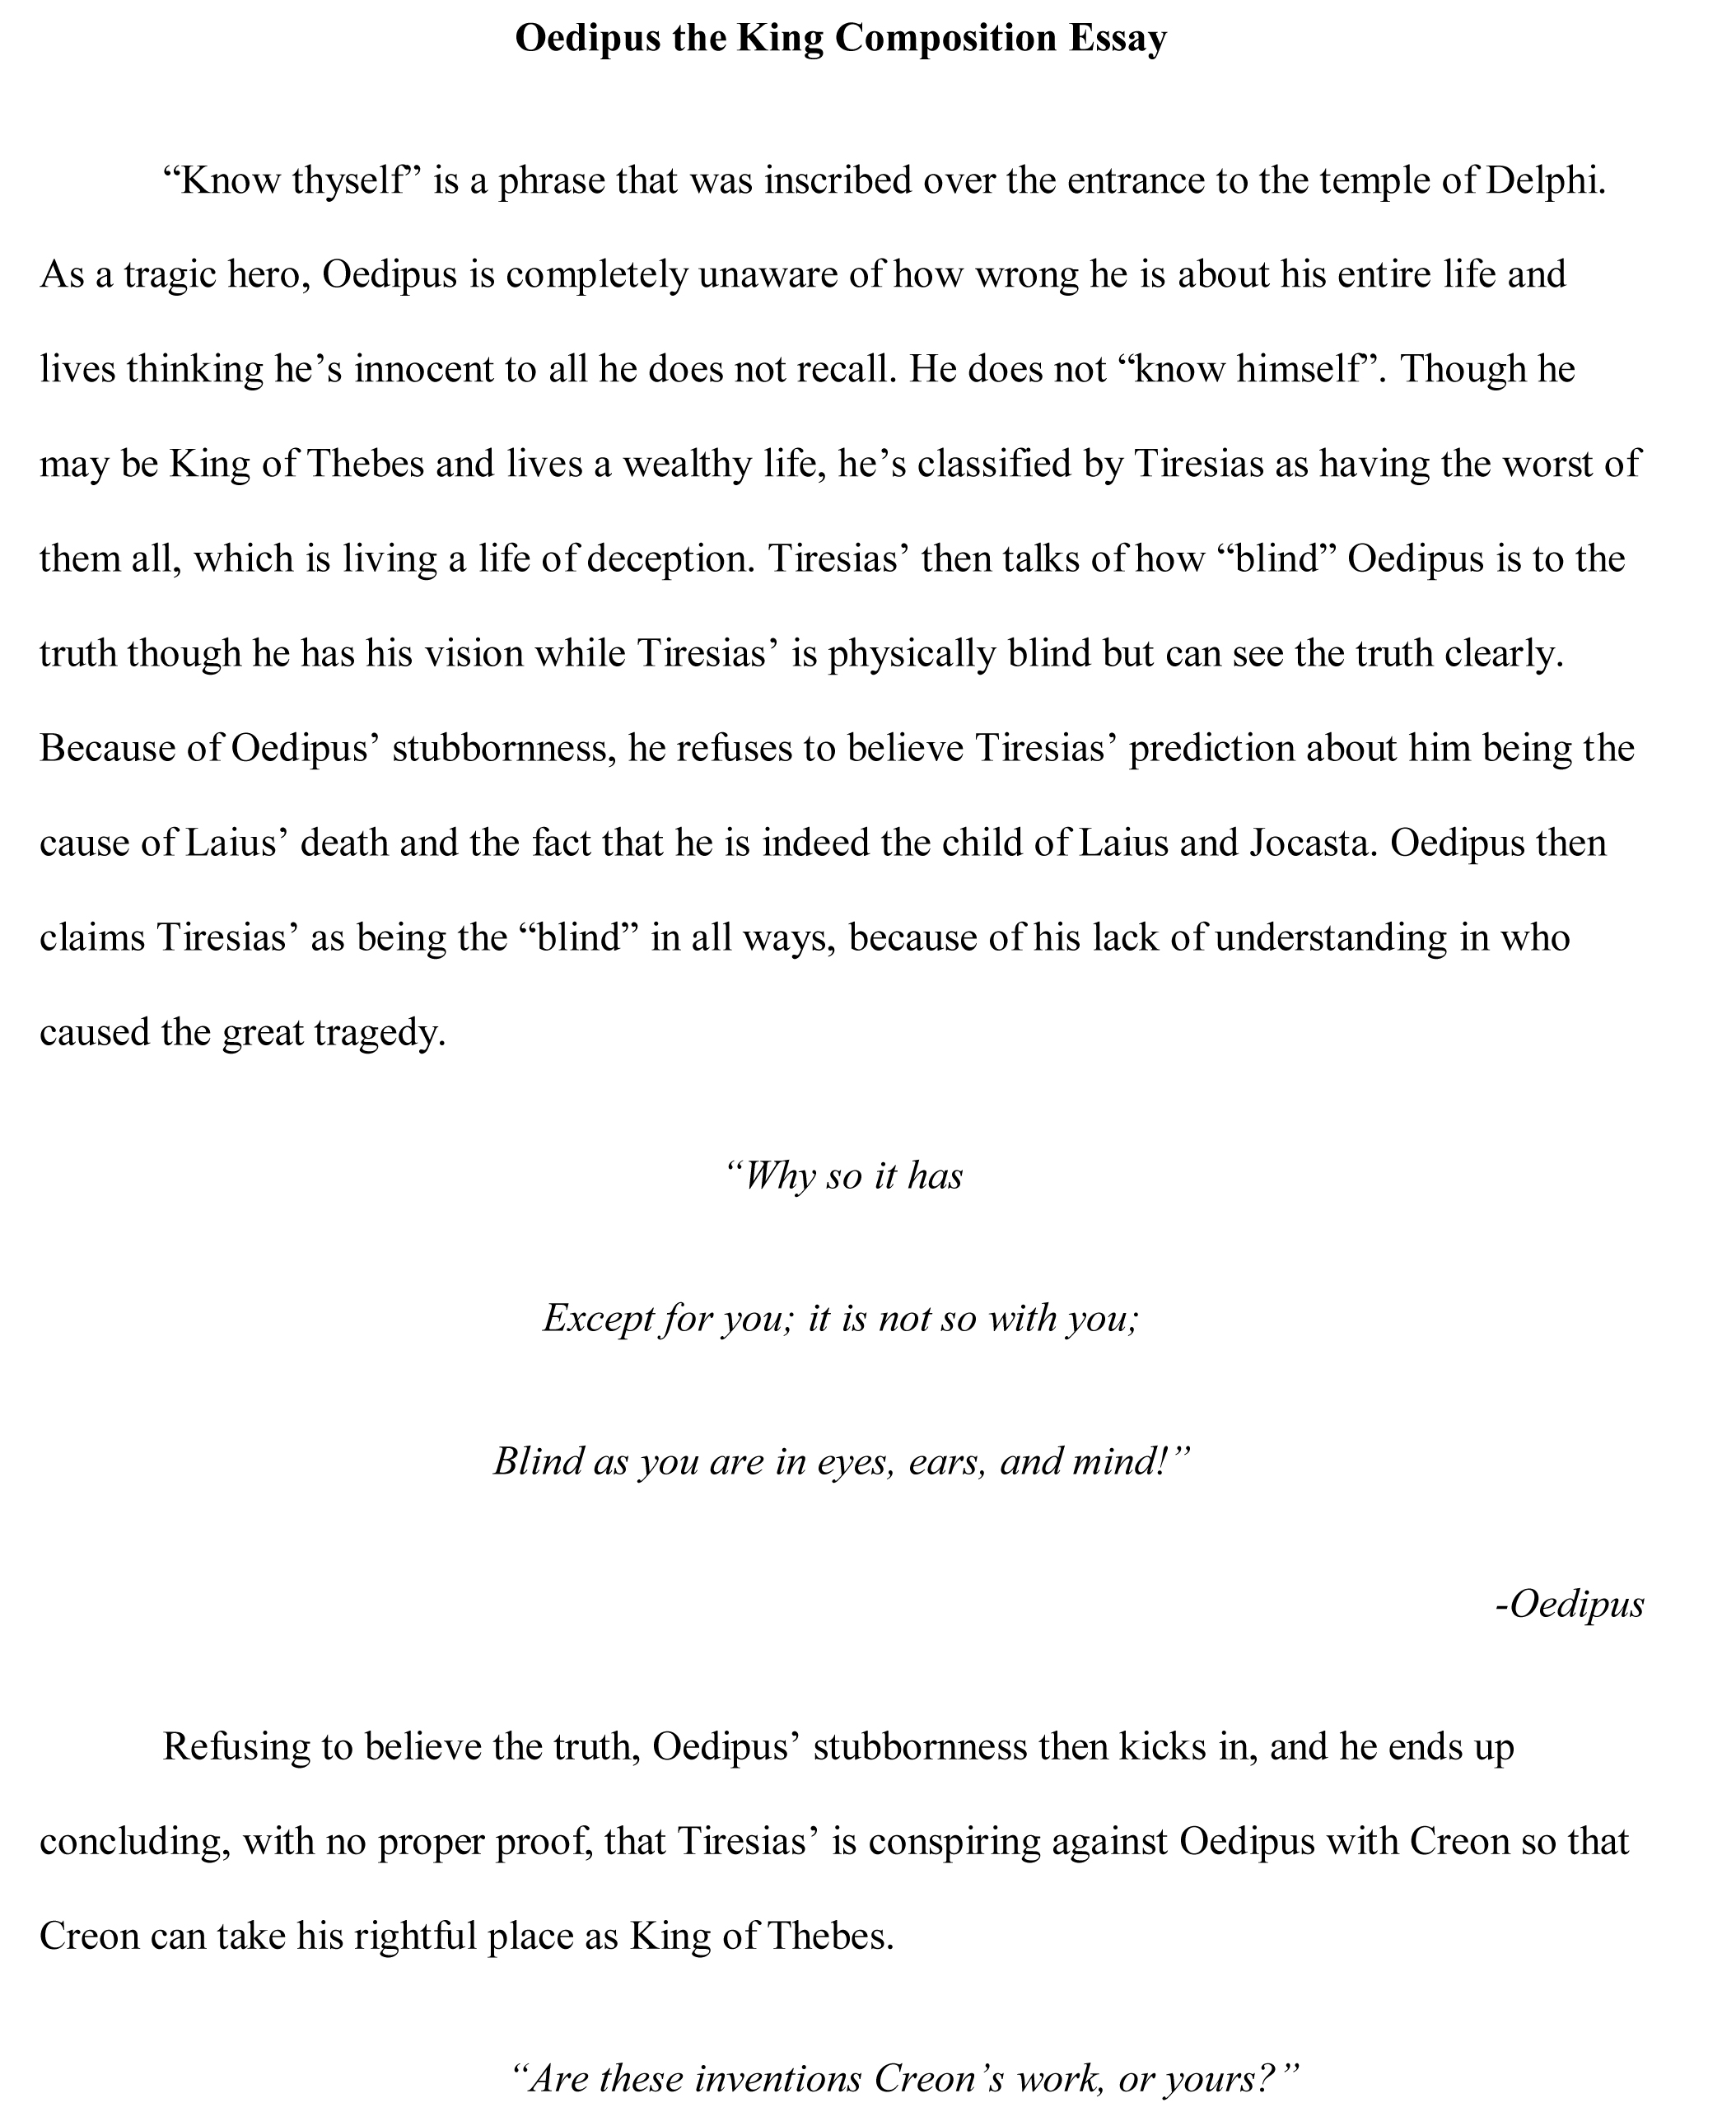 011 Oedipus Essay Free Sample Good Hooks For Essayss Excellent Essays Examples College Of Expository Full